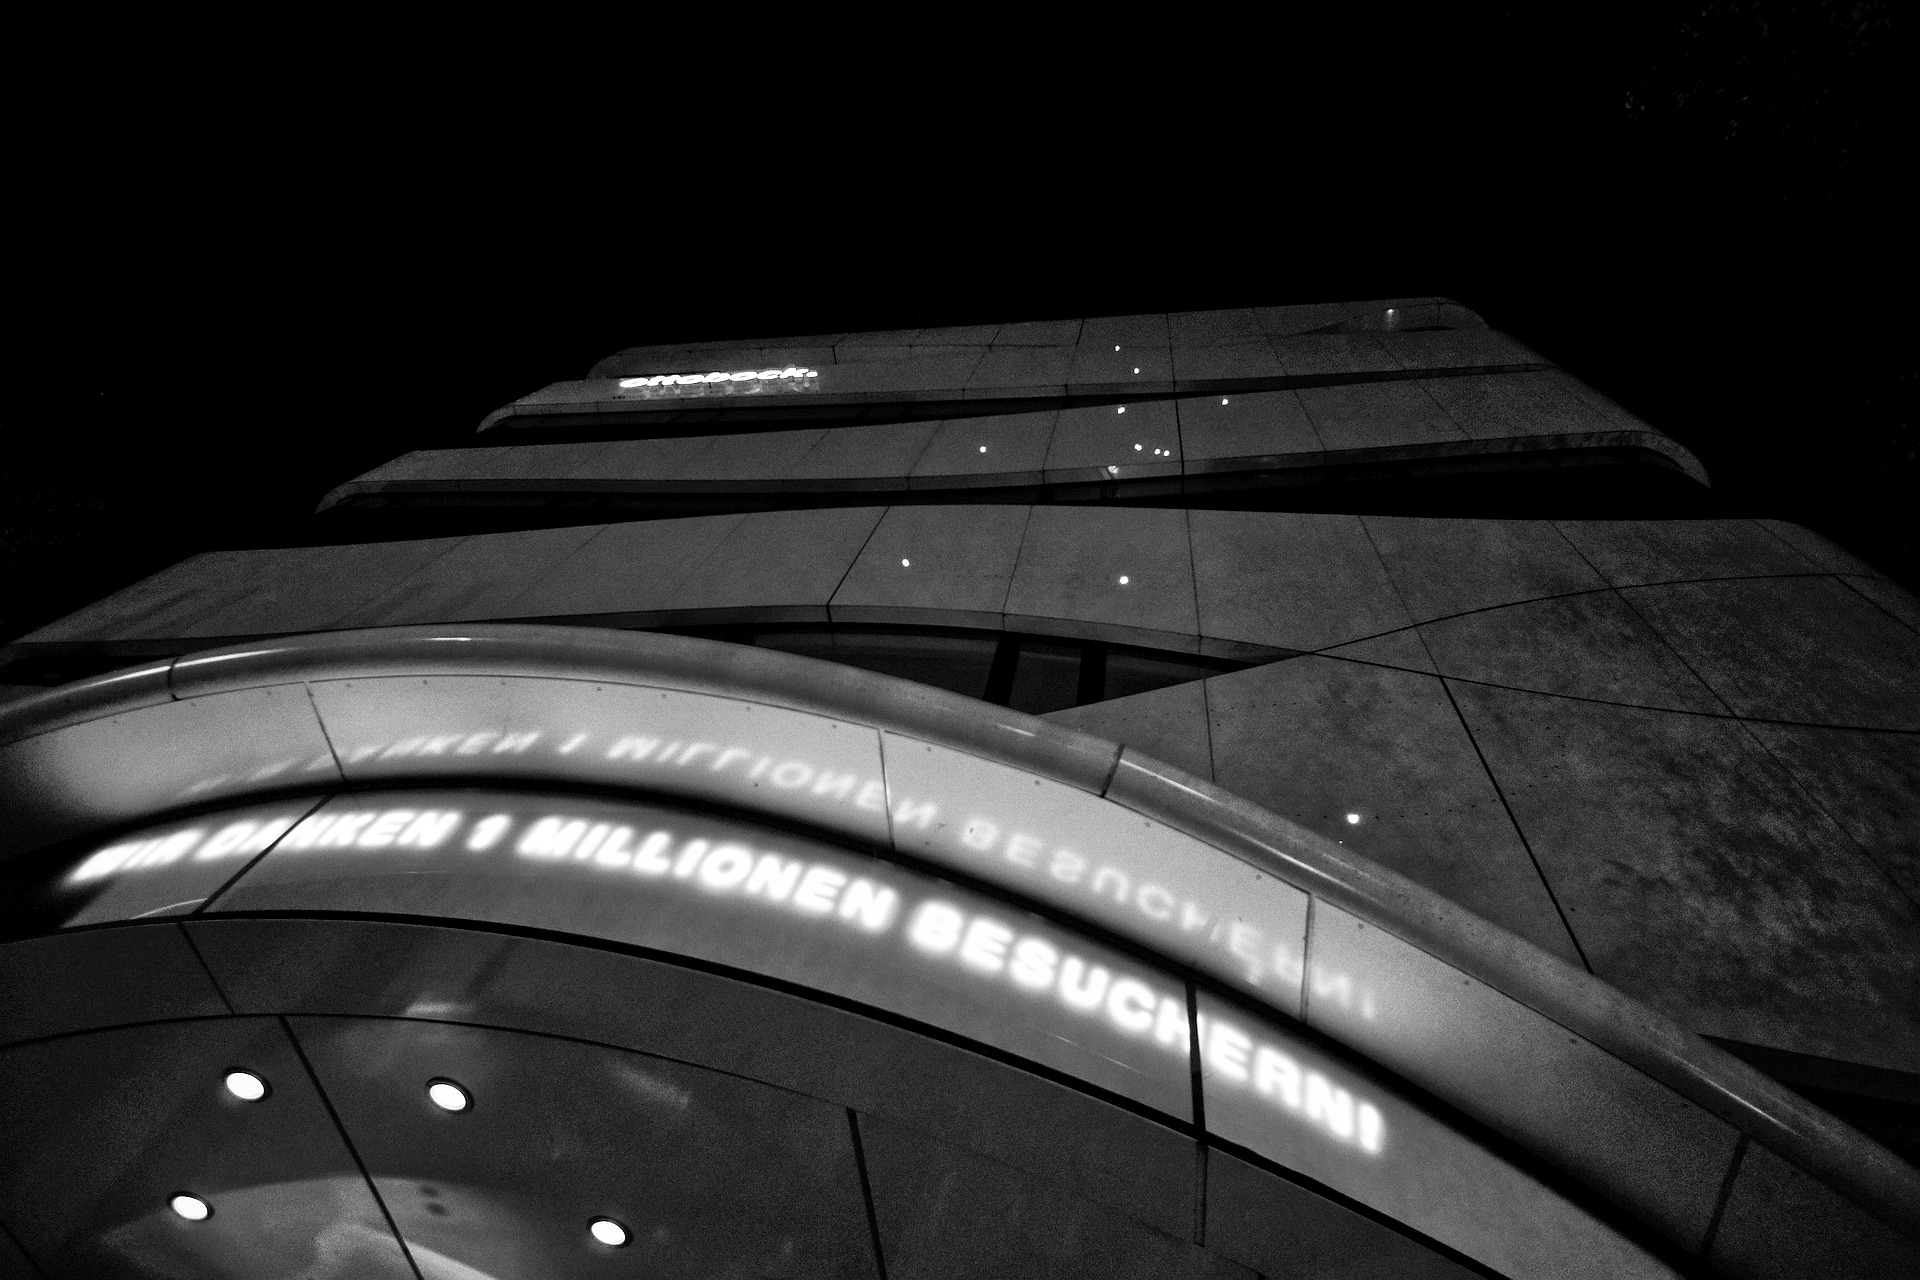 Berlin in Black - Ottobock Science Center Berlin